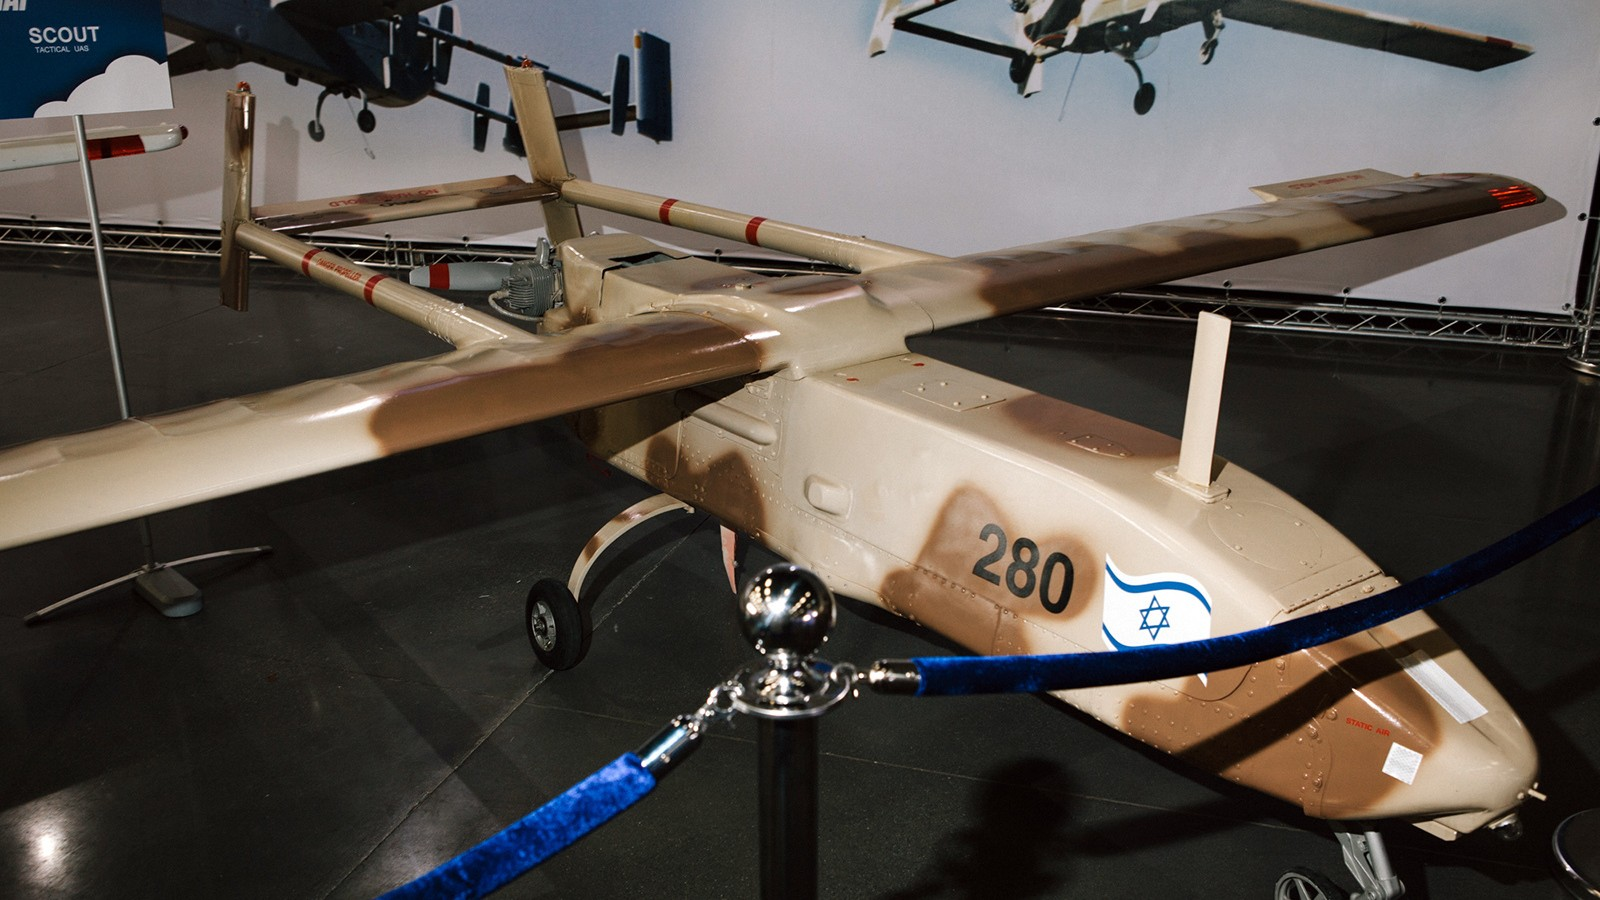 Newest Trend for Israeli Drone Industry: Shooting Them Down